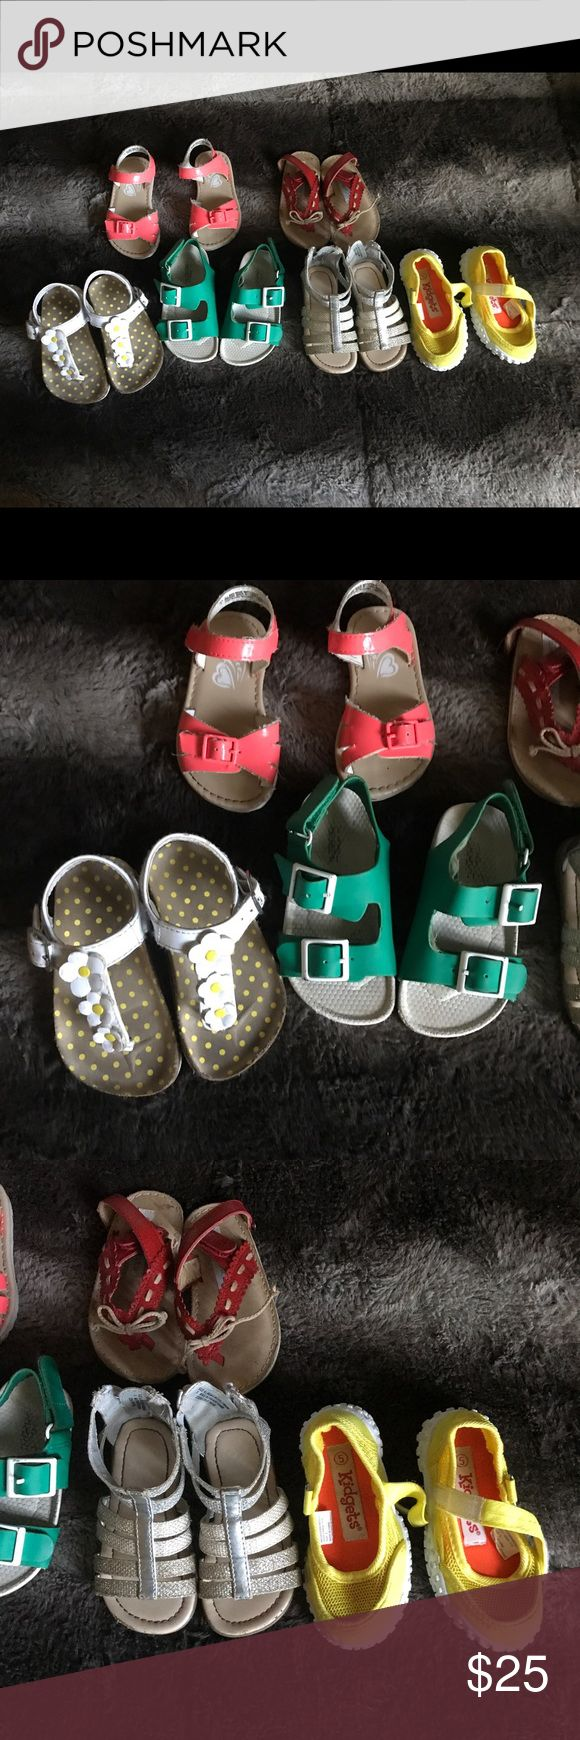 Baby Girl shoe Lot 6 pair of sandals all are in Pre owned condition some in better green Zara one need to be tacked down the lining is loose easy Fix with glue but not really a factor when wearing them all size 5 some can use a wipe down Shoes Sandals & Flip Flops